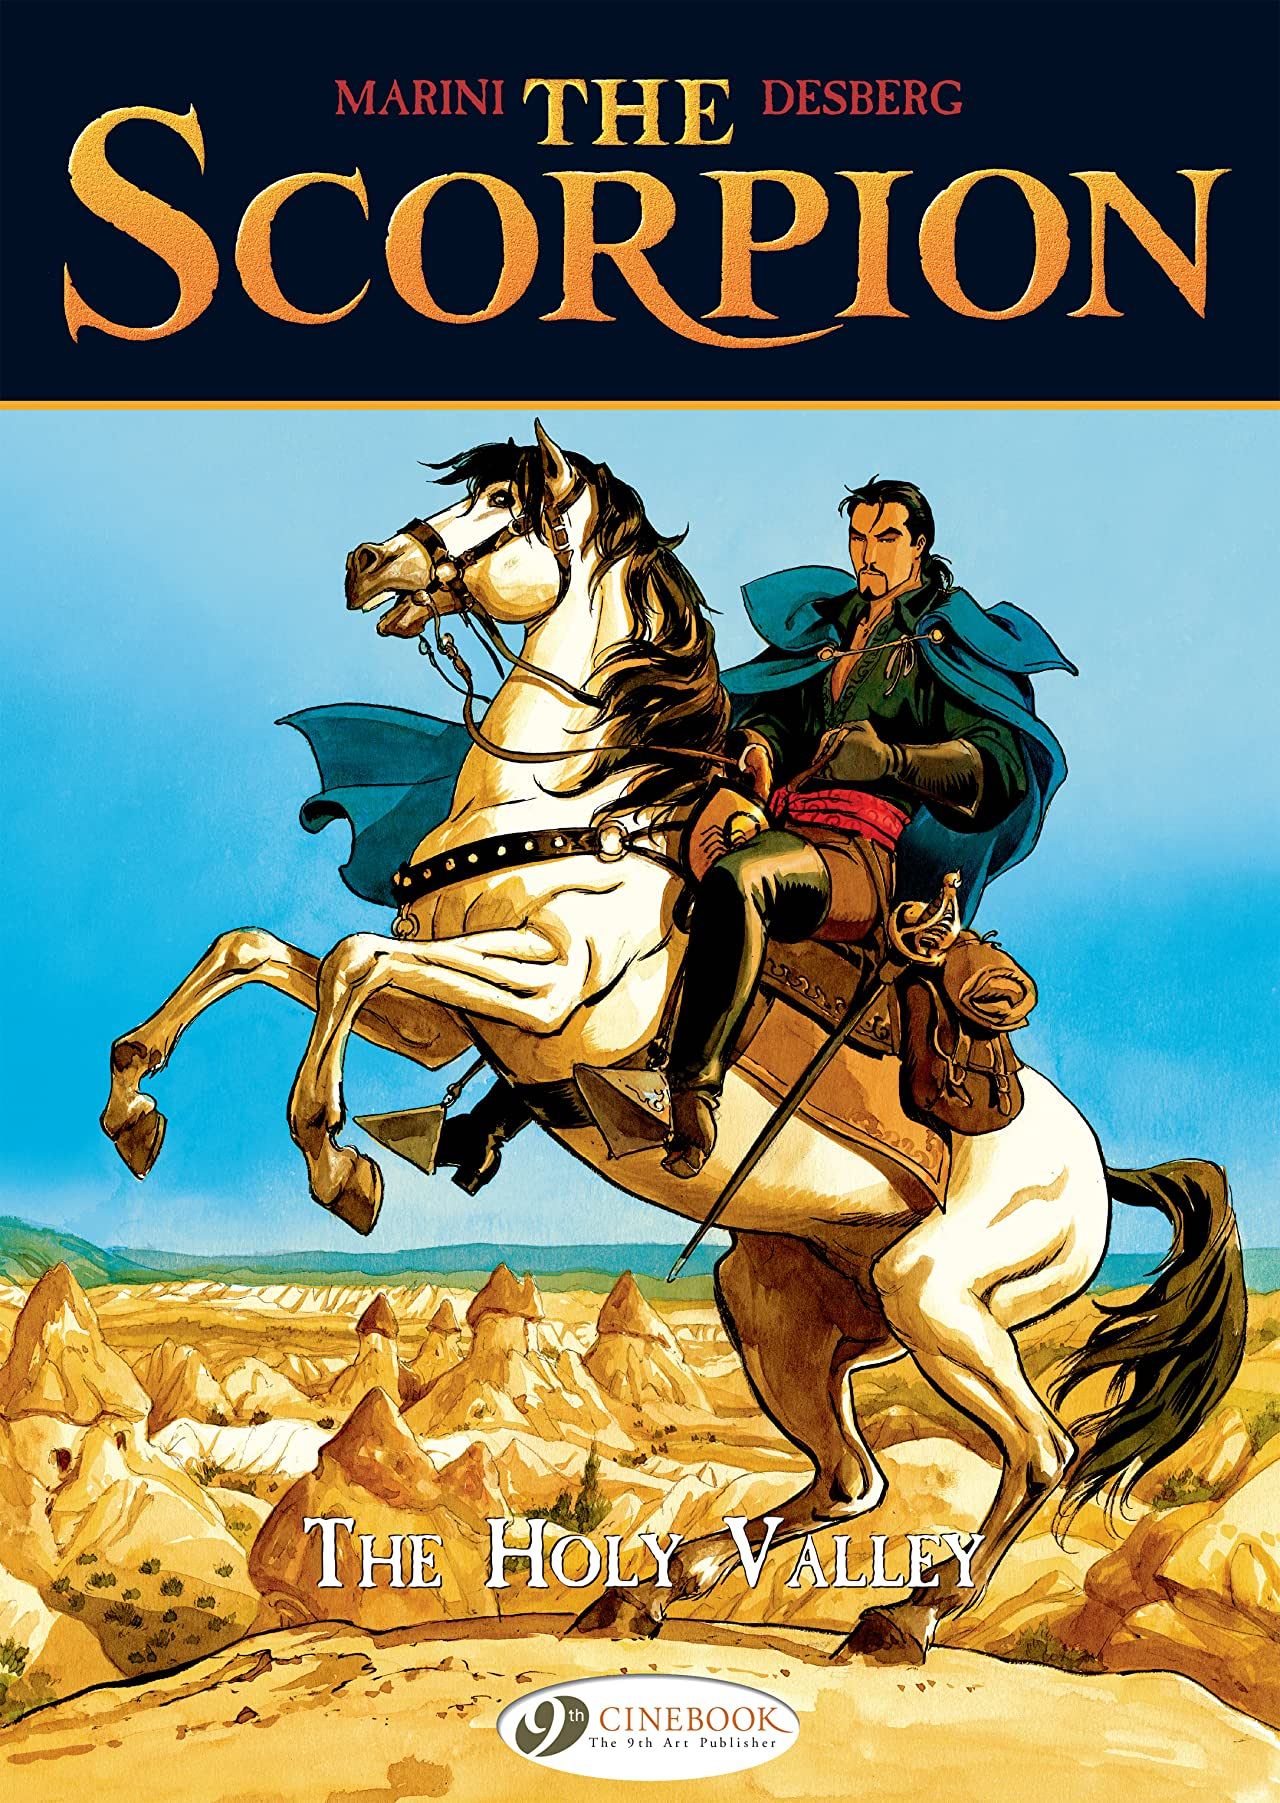 The Scorpion Vol. 3: The Holly Valley